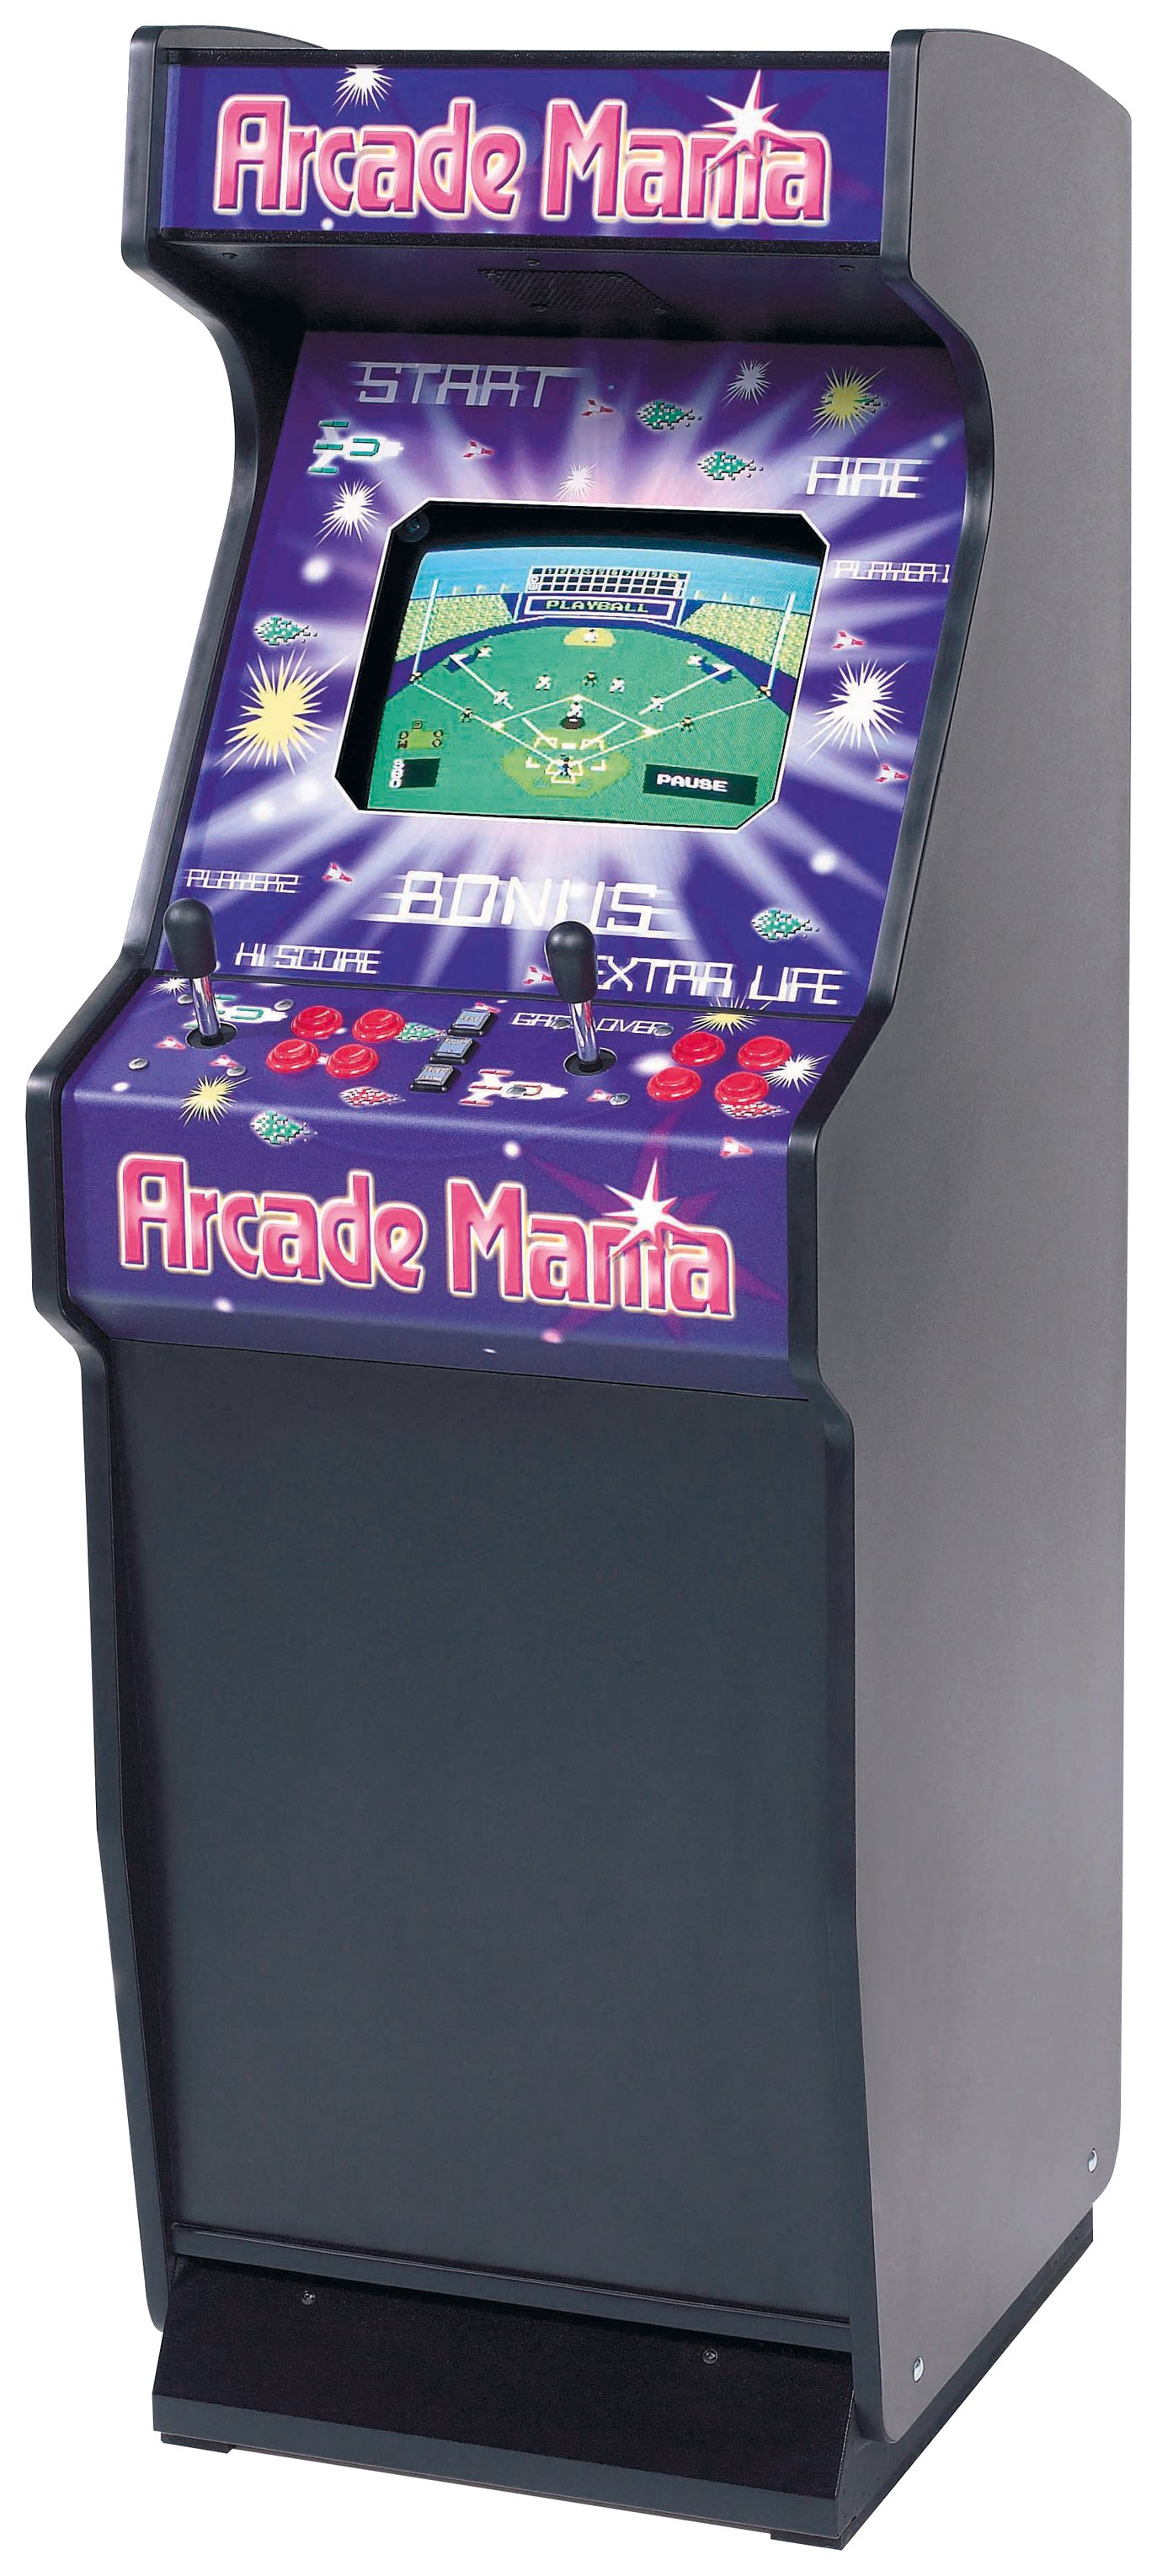 Image of Arcade Mania 75 in 1 Freestanding Game Machine.